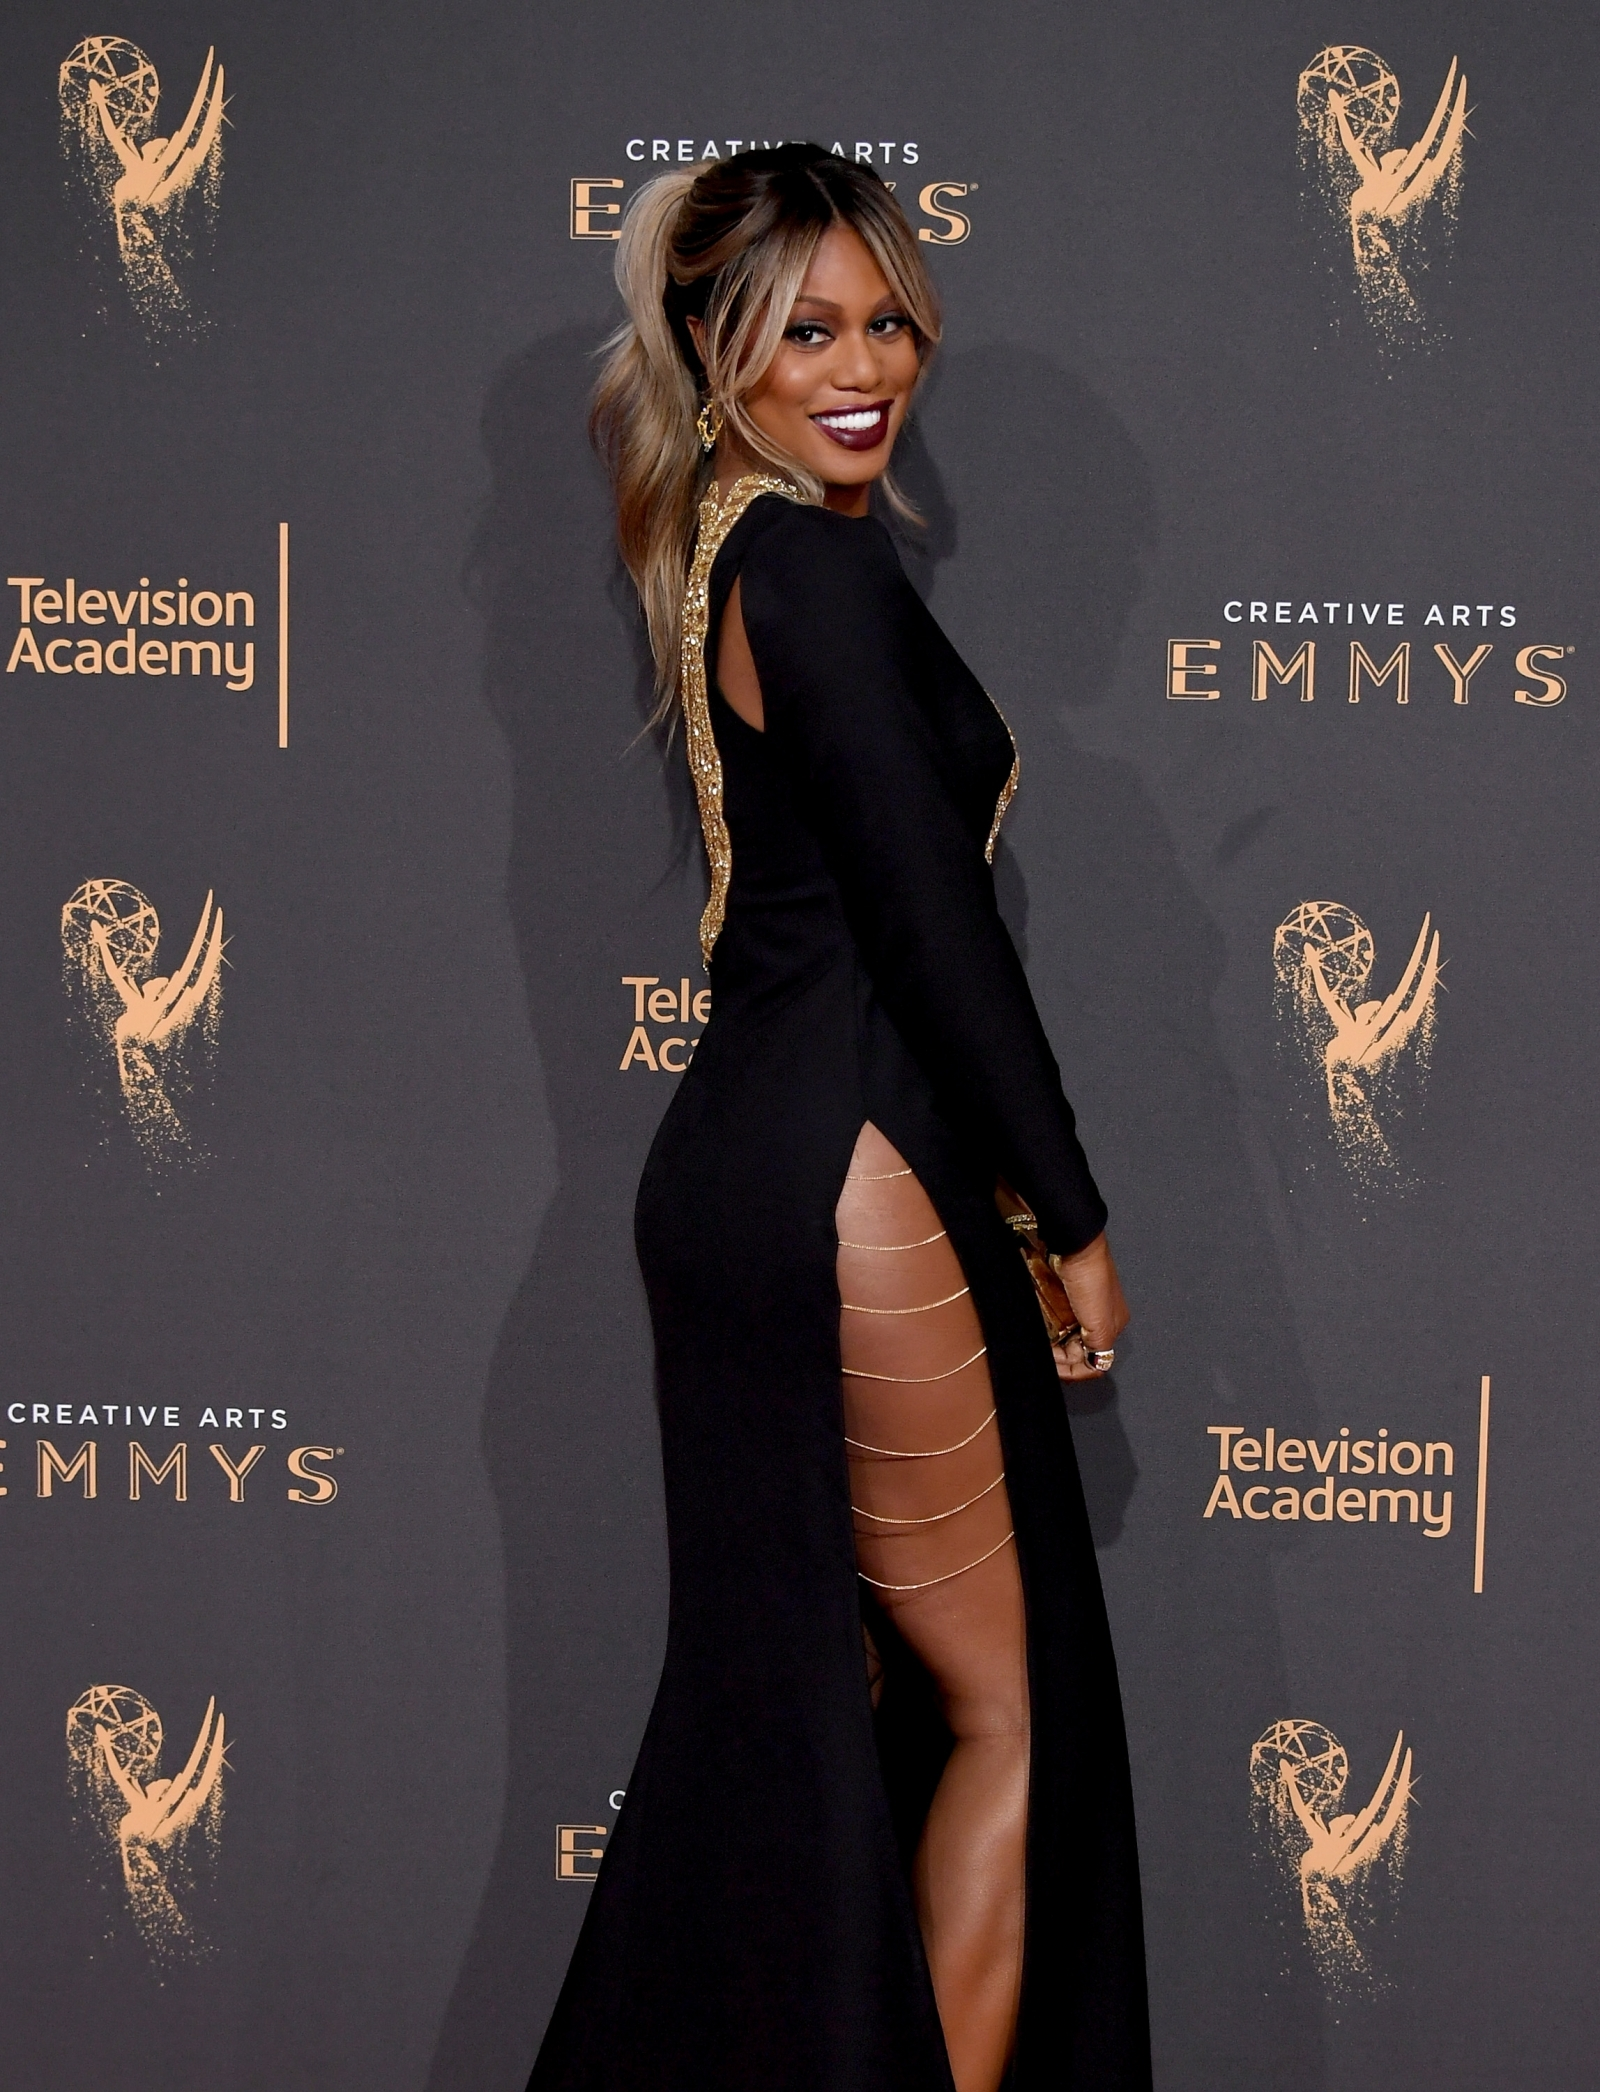 Laverne Cox Shows Off Toned Booty In Revealing Gown At